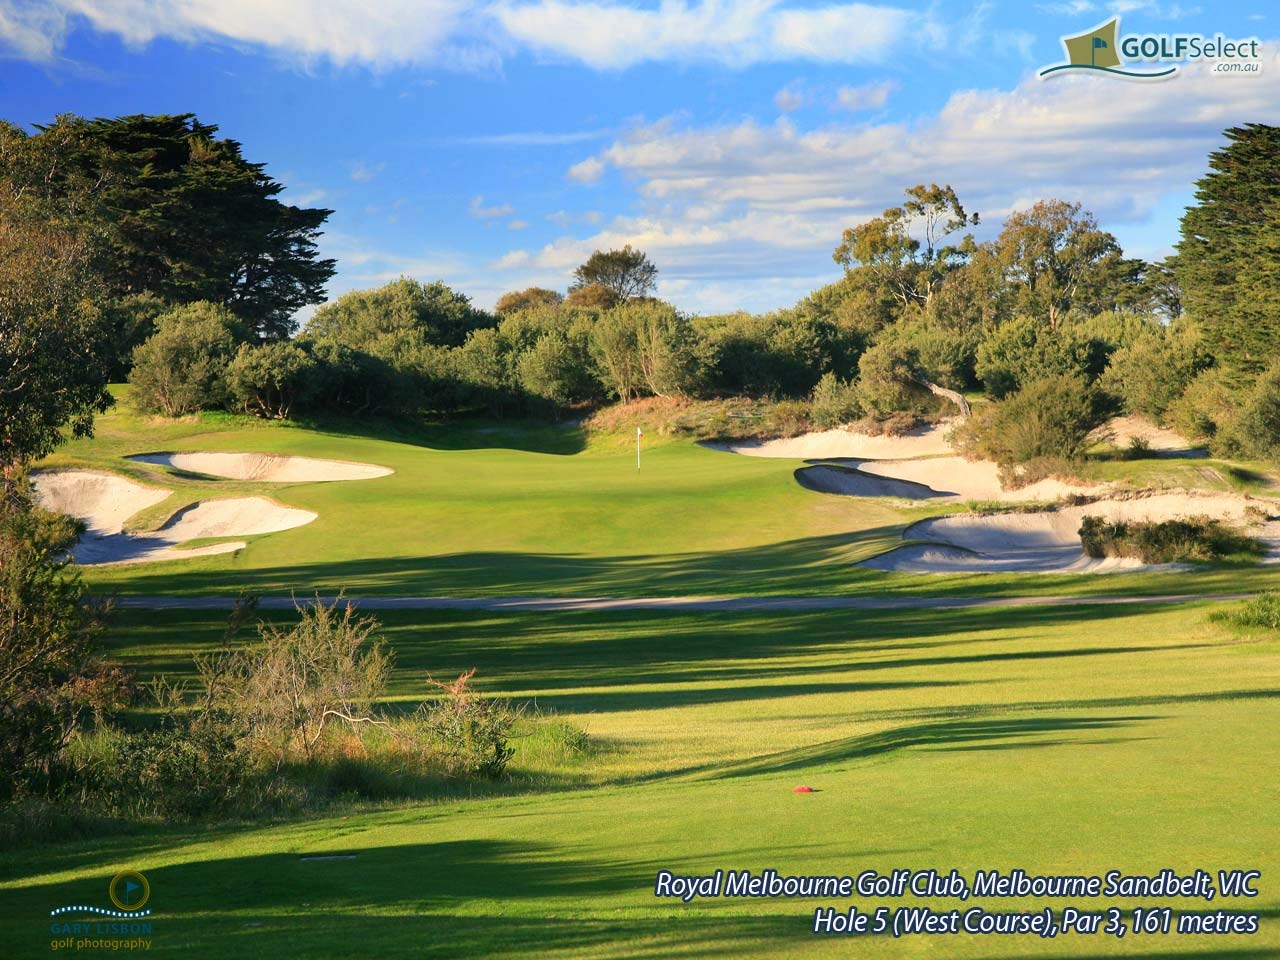 The Royal Melbourne Golf Club (West Course) Hole 5 (West Course), Par 3, 161 metres